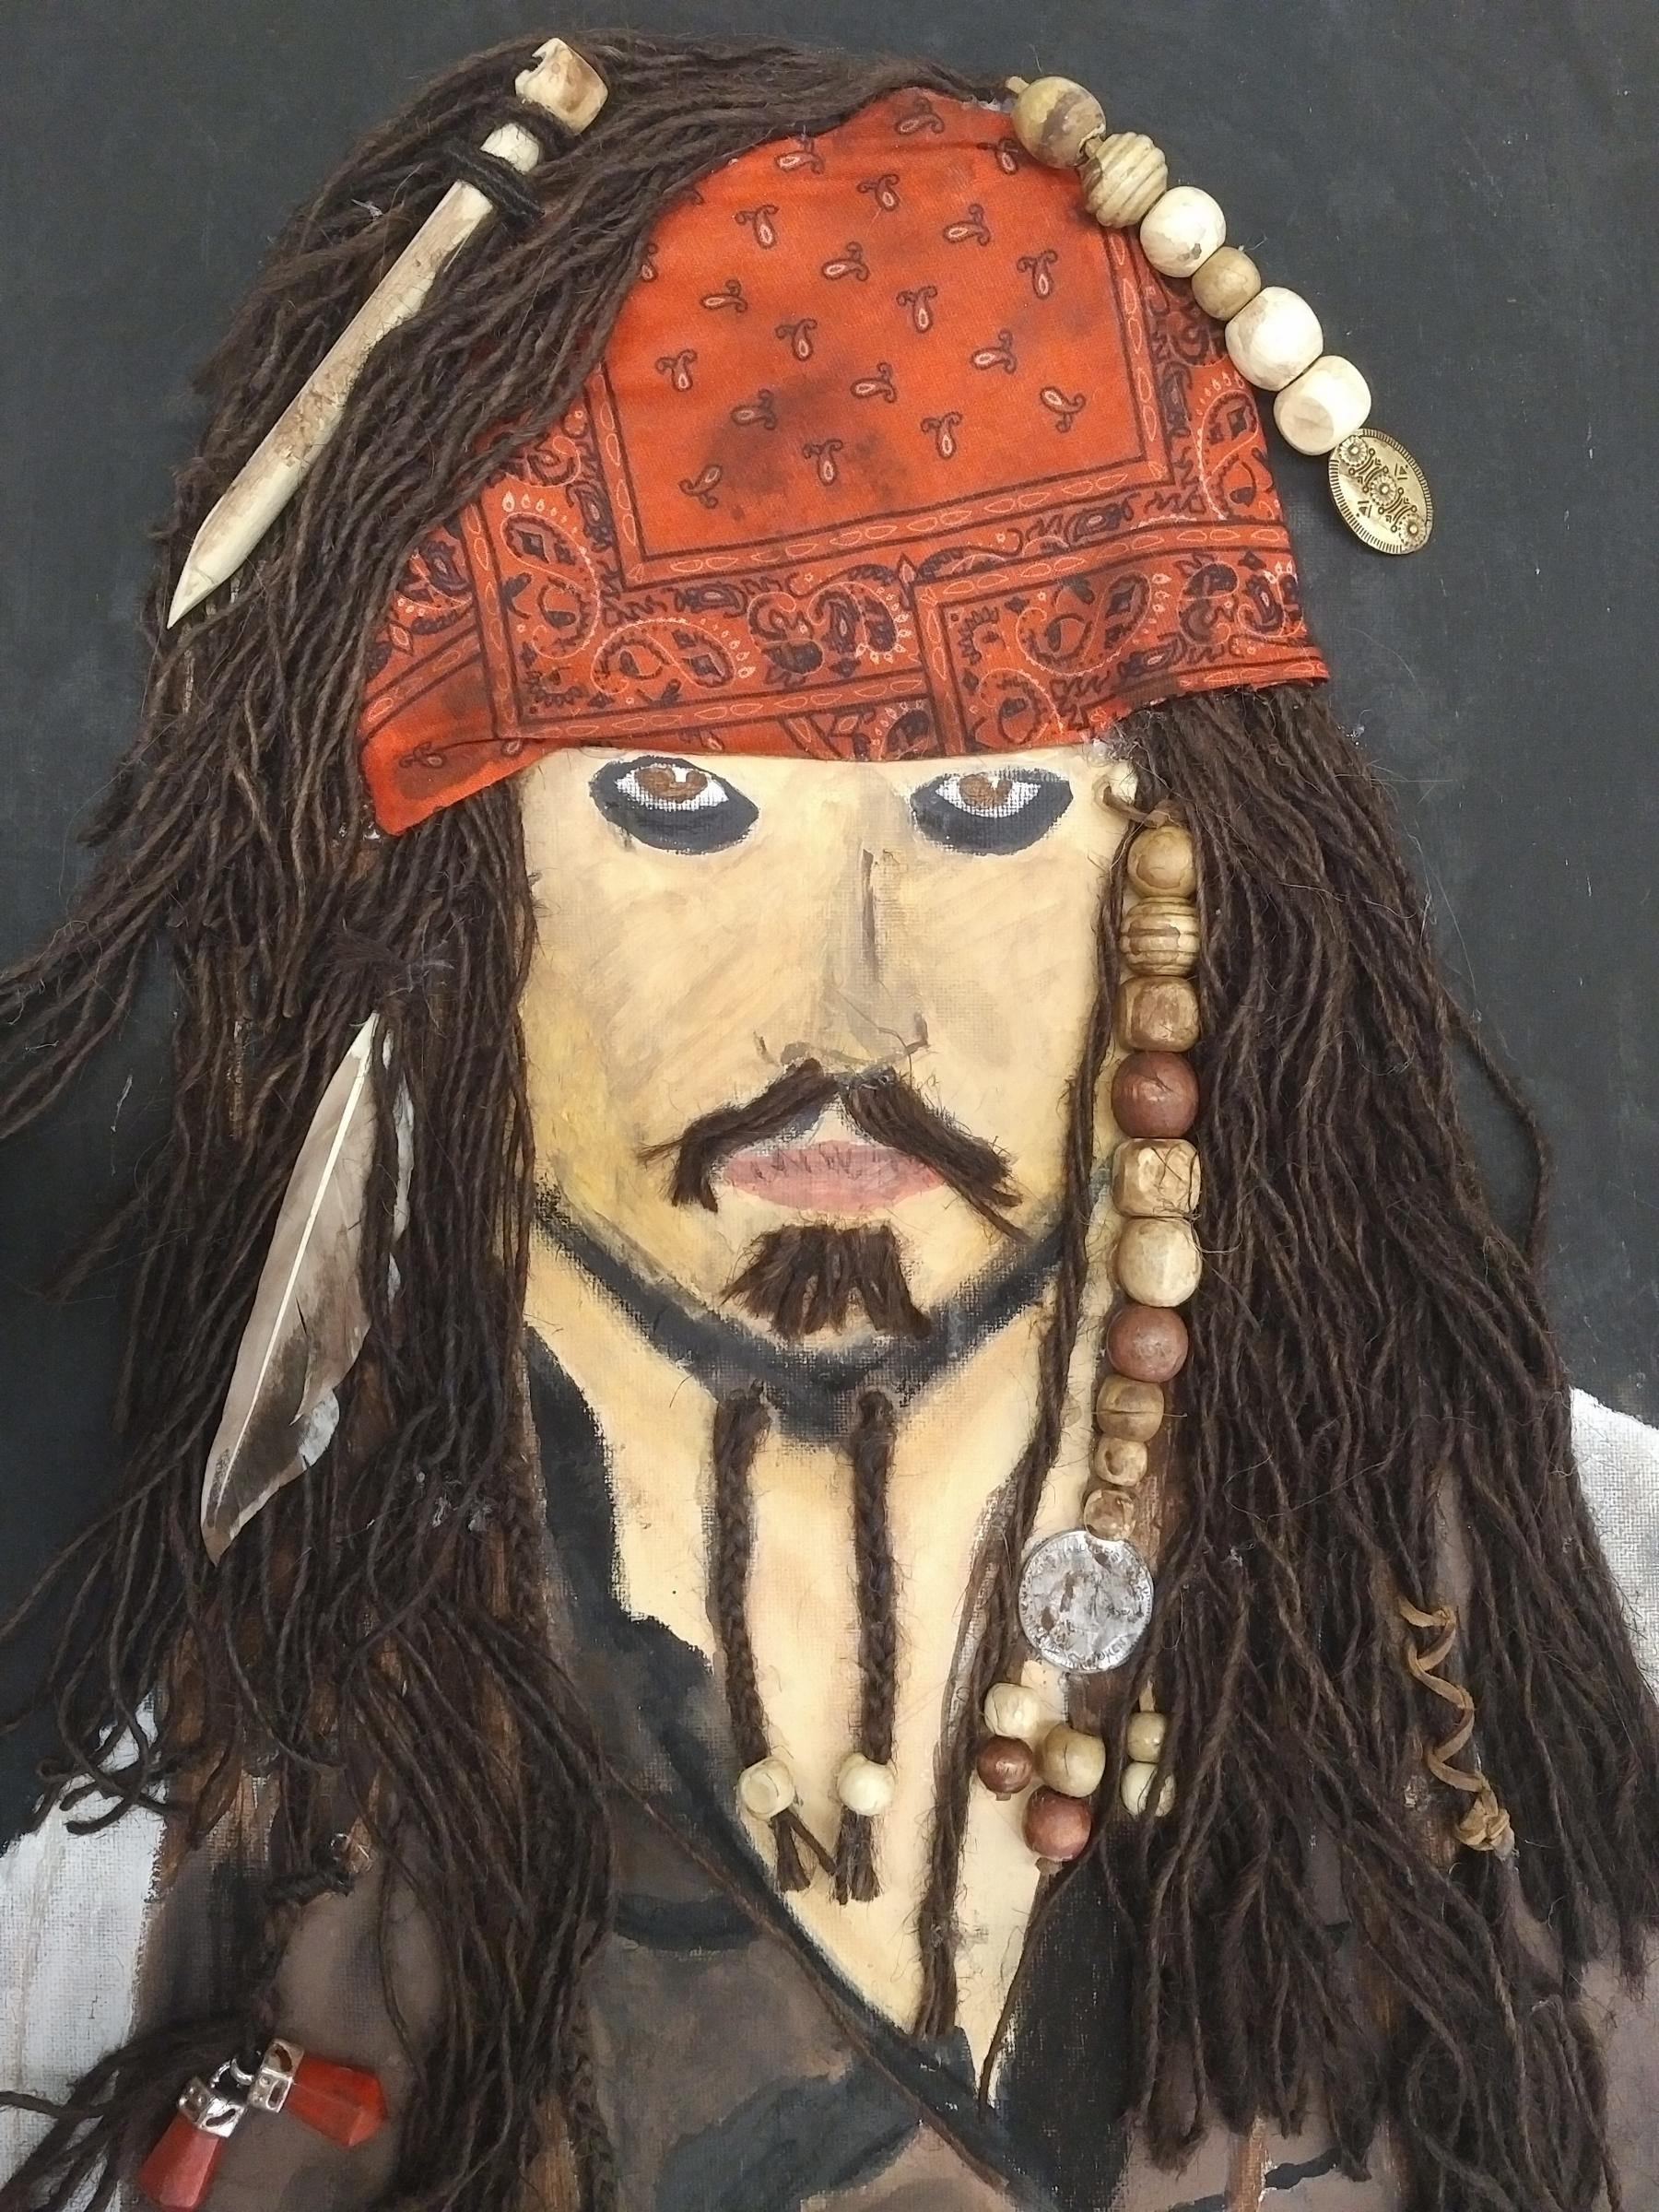 Jack Sparrow by Brianna Negron